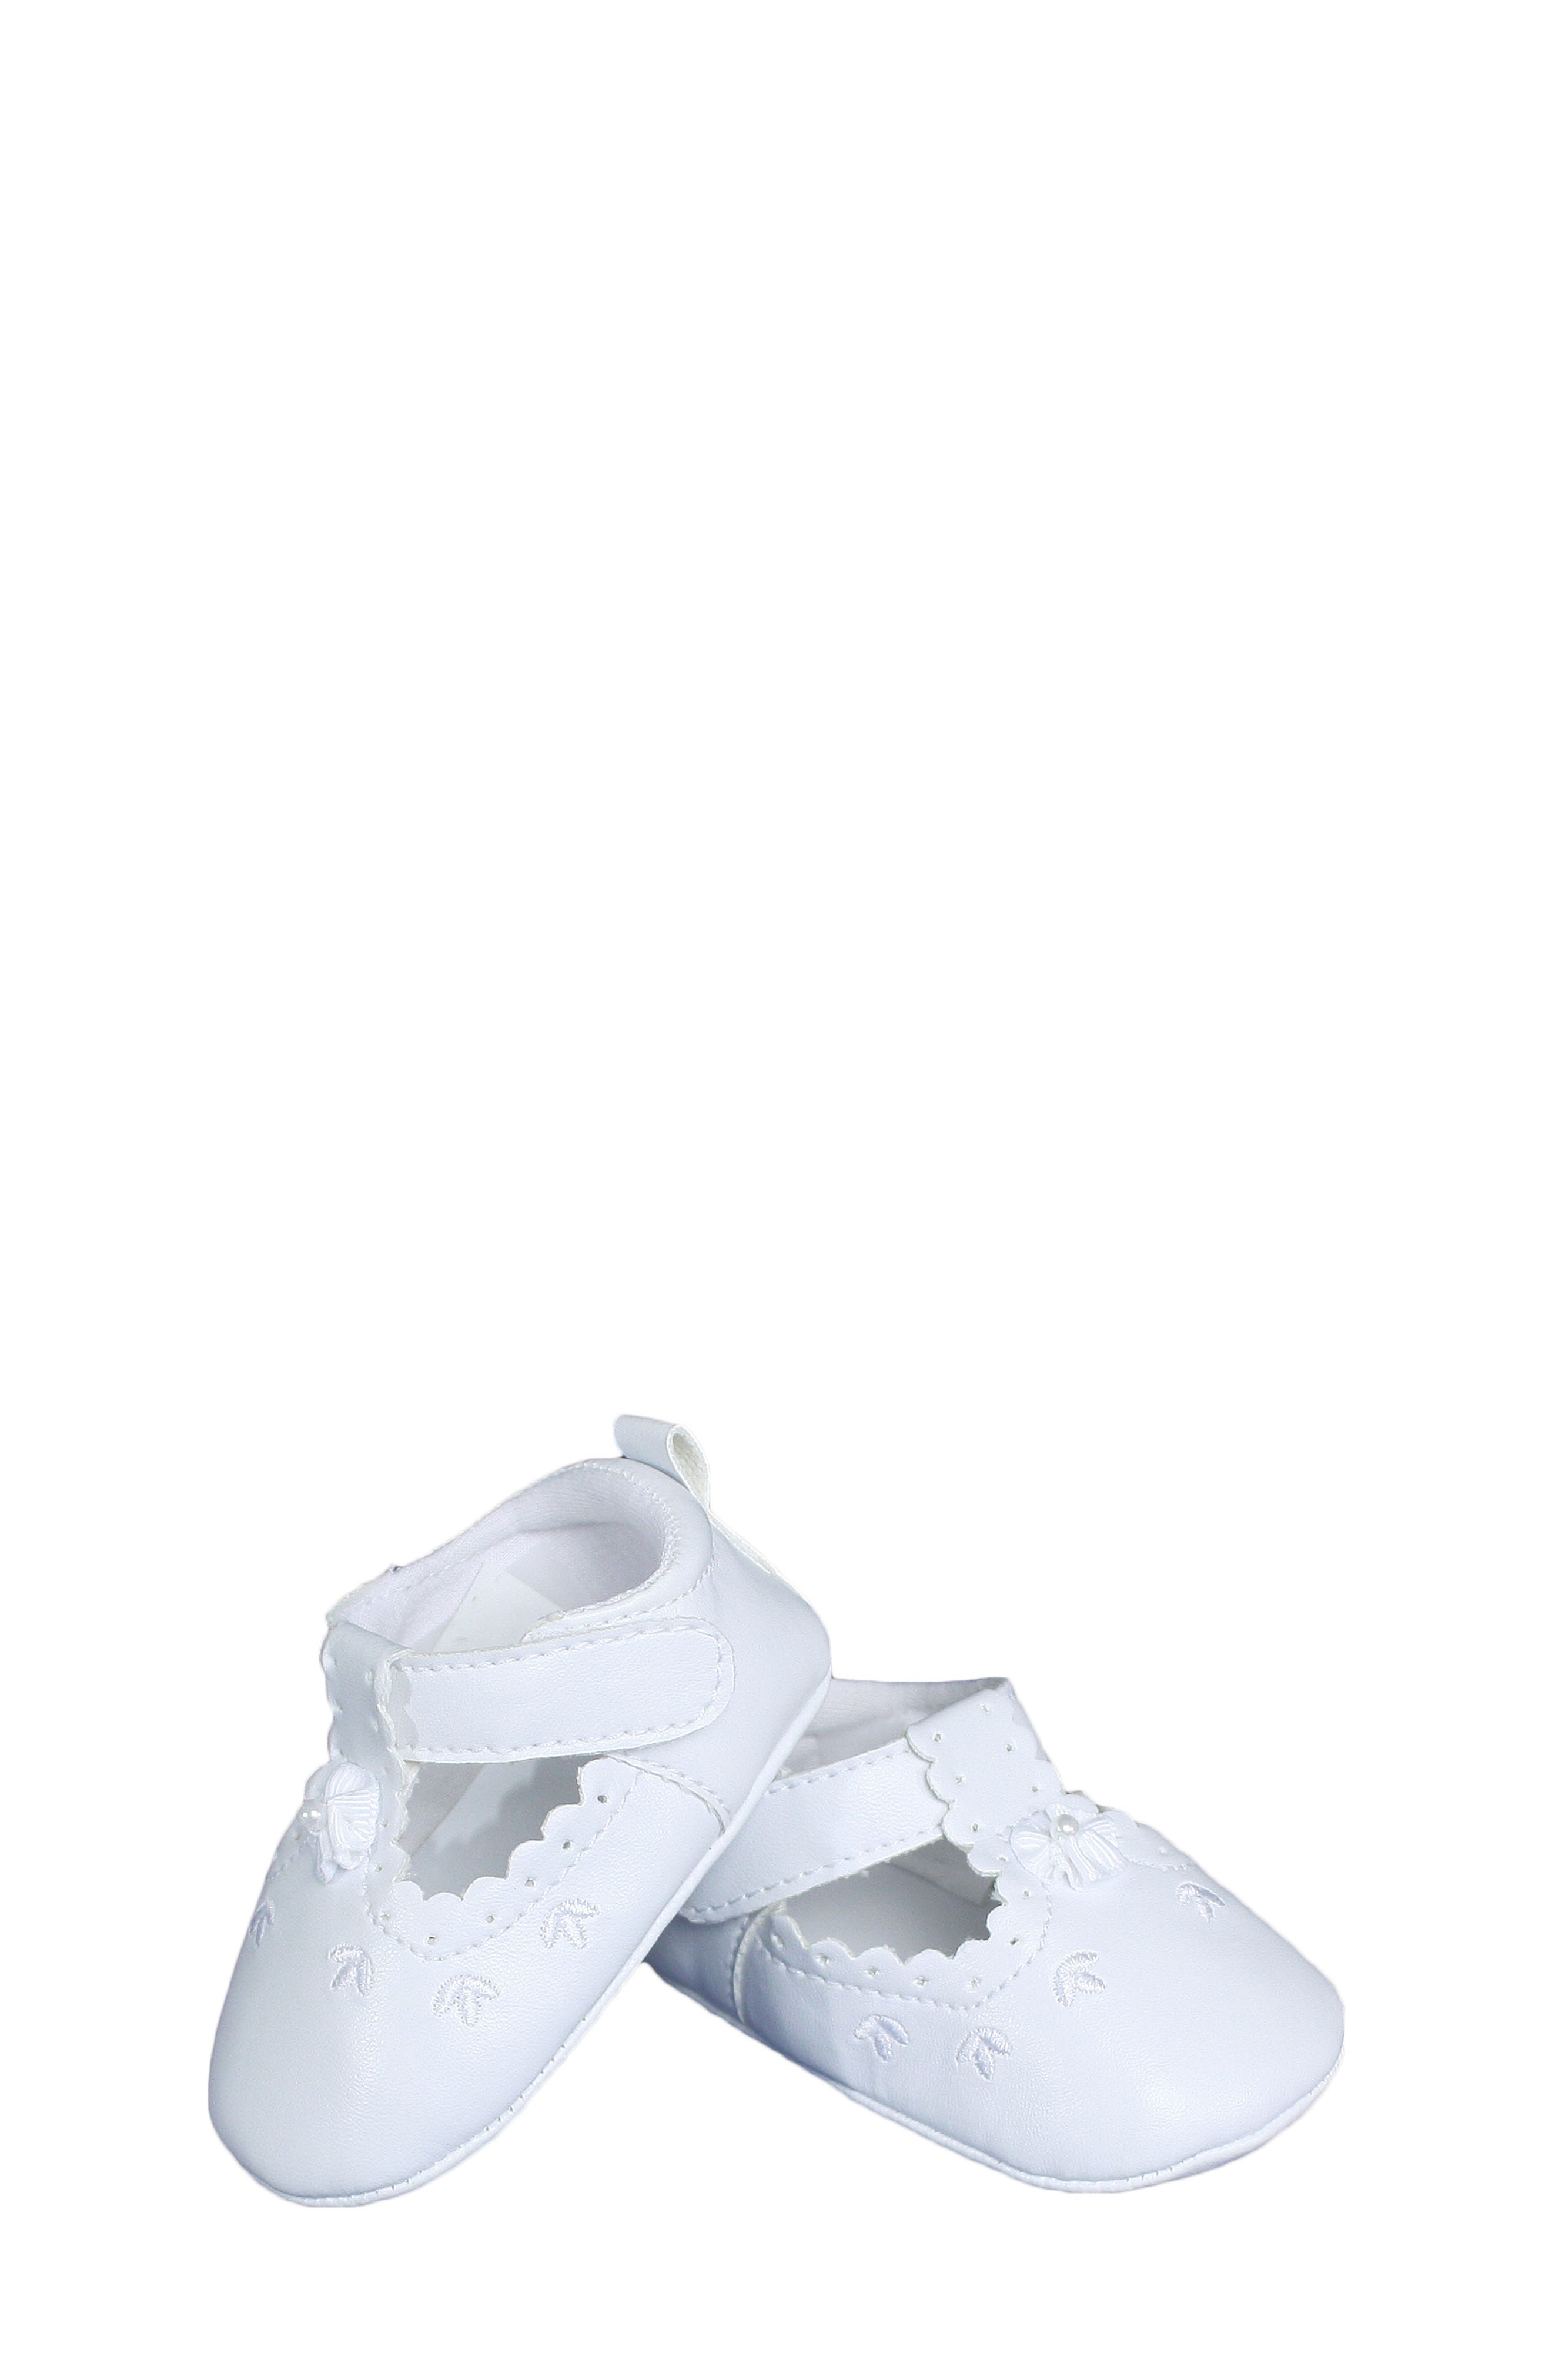 Mary Jane Crib Shoe,                             Main thumbnail 1, color,                             White